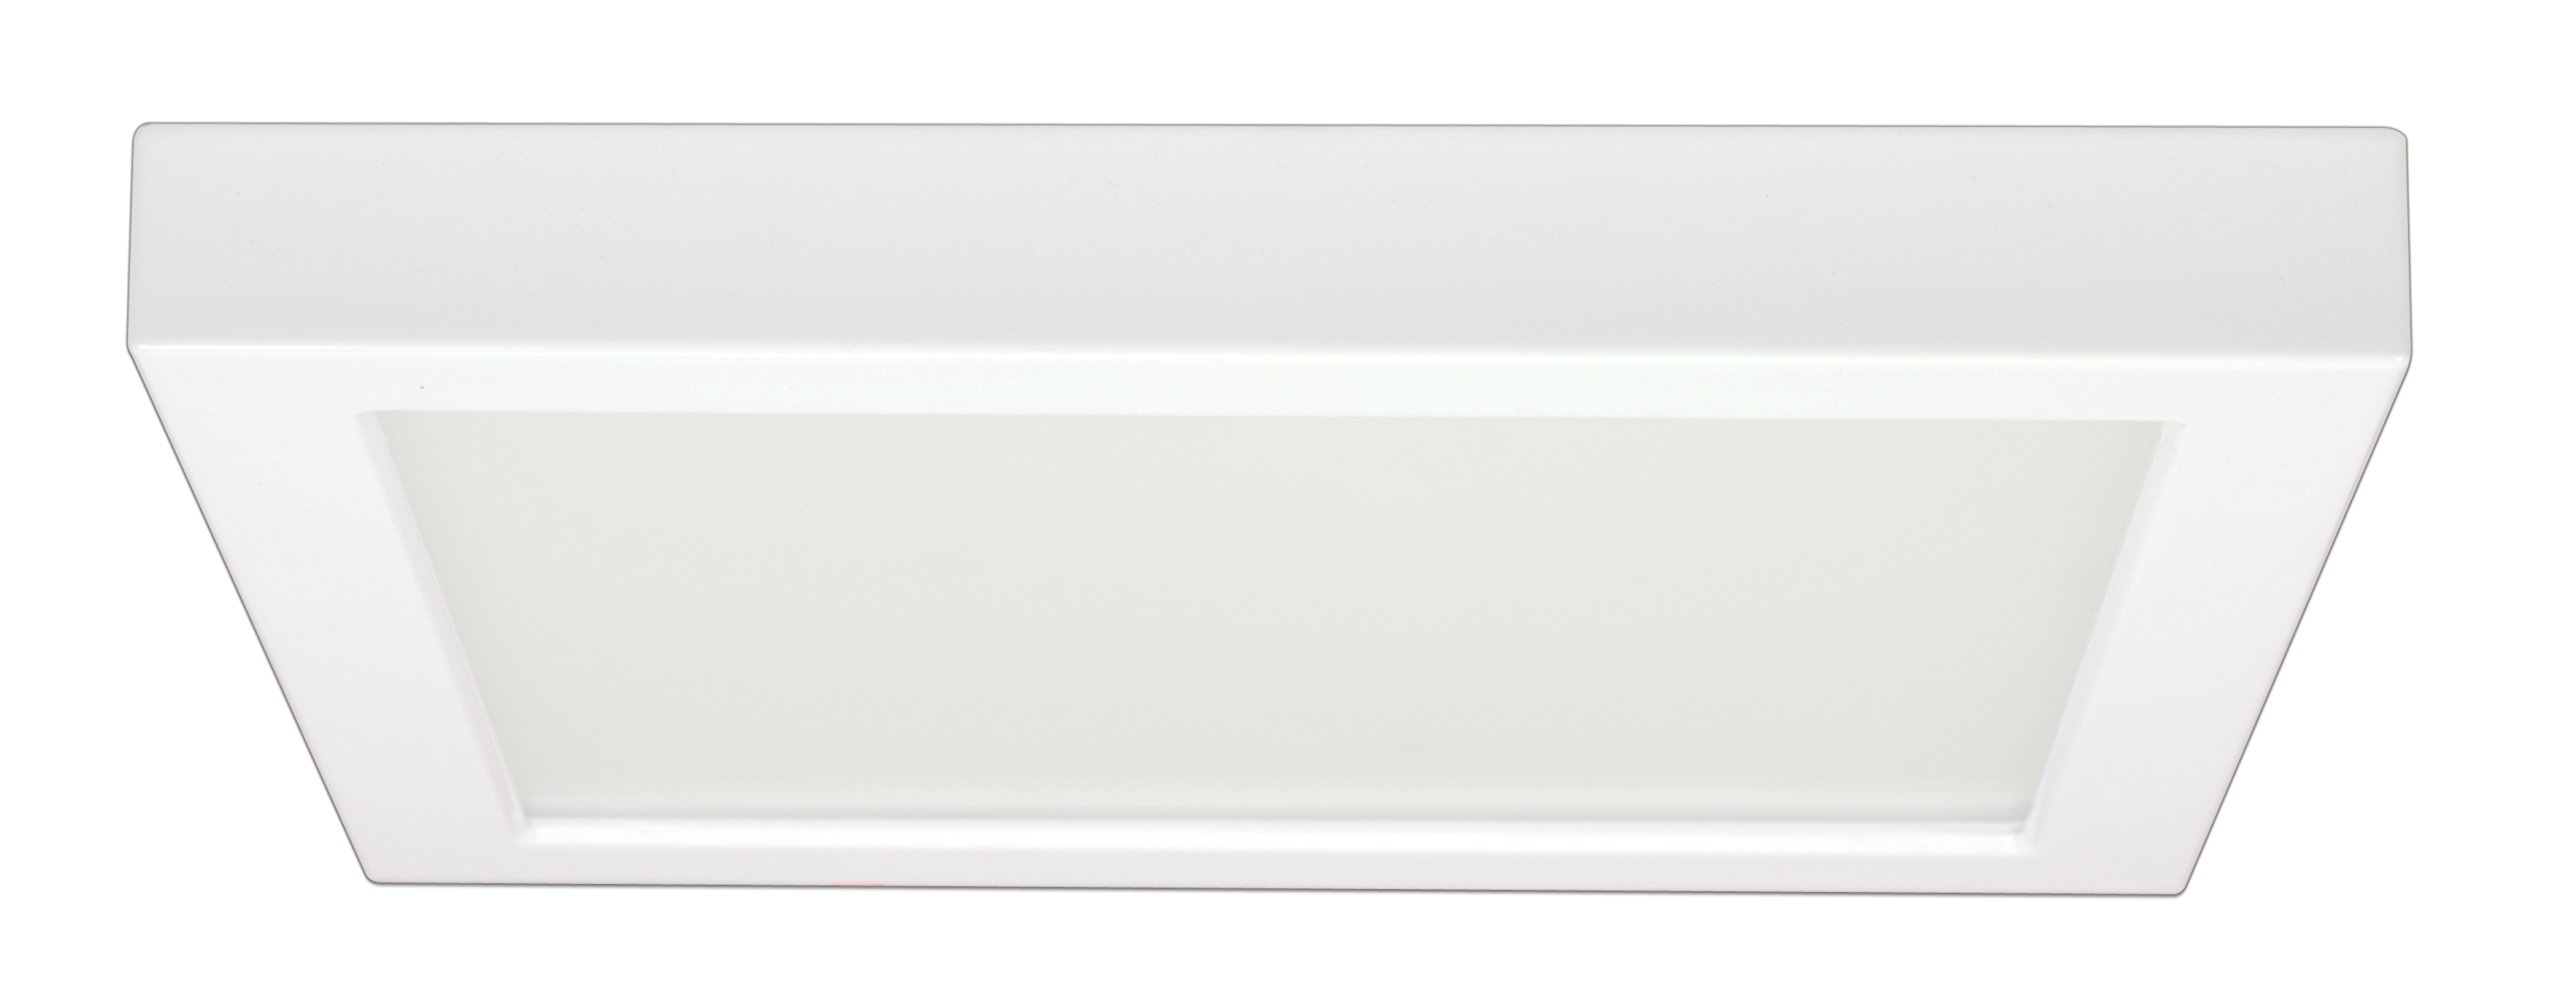 Satco Products S9363 Blink Flush Mount LED Fixture, 18.5W/9'', White